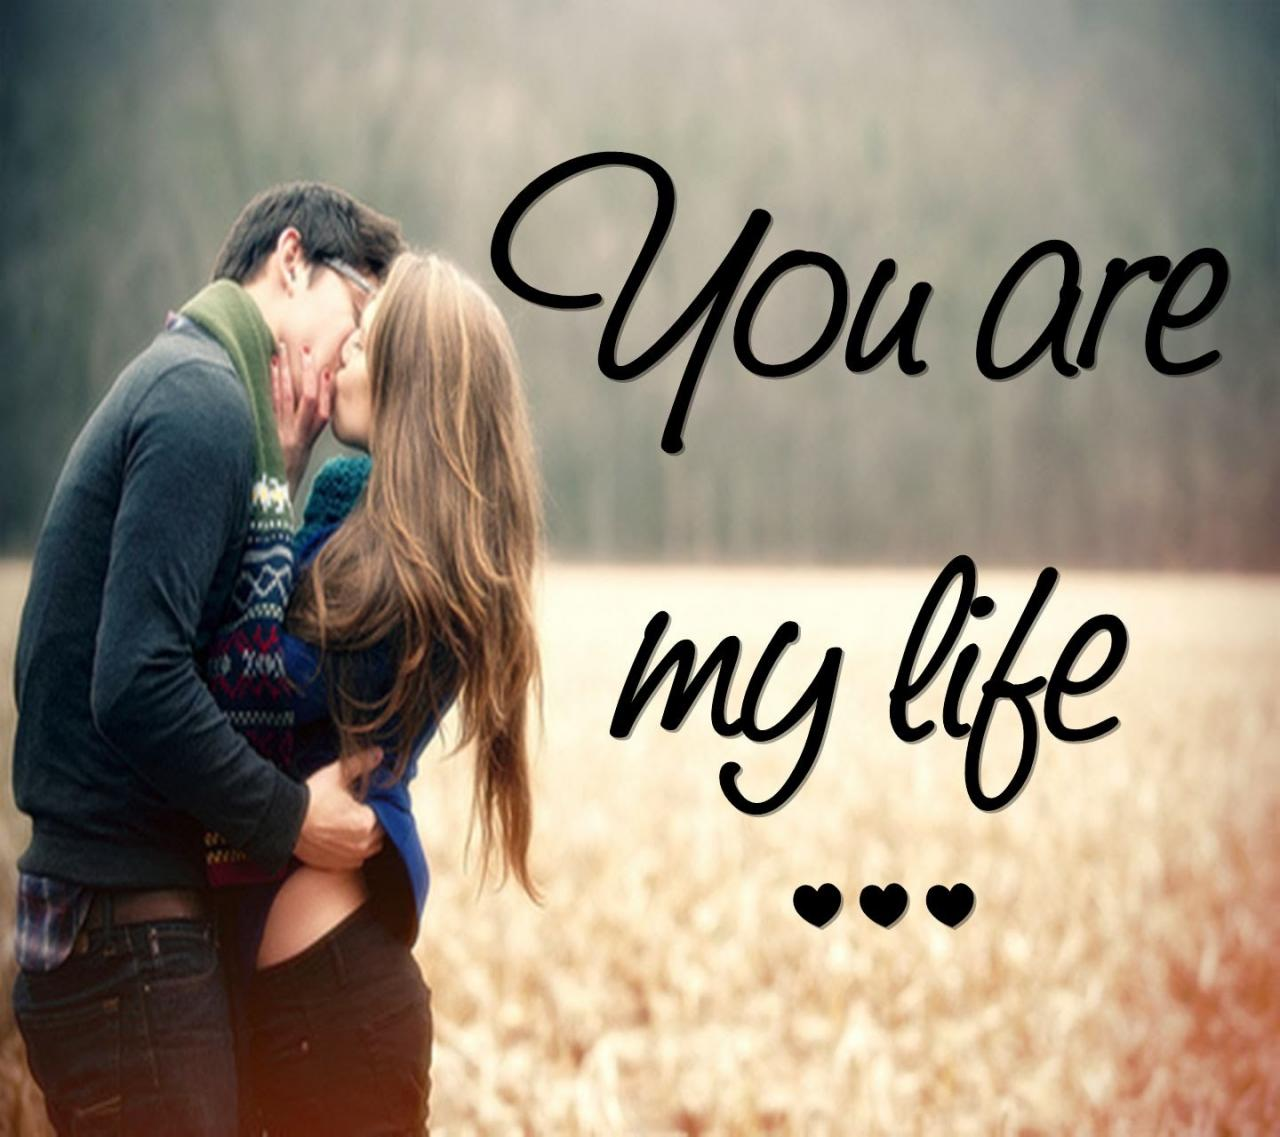 Cute Love Quotes And Sayings For Couples  Love Quotes For Him From The Heart